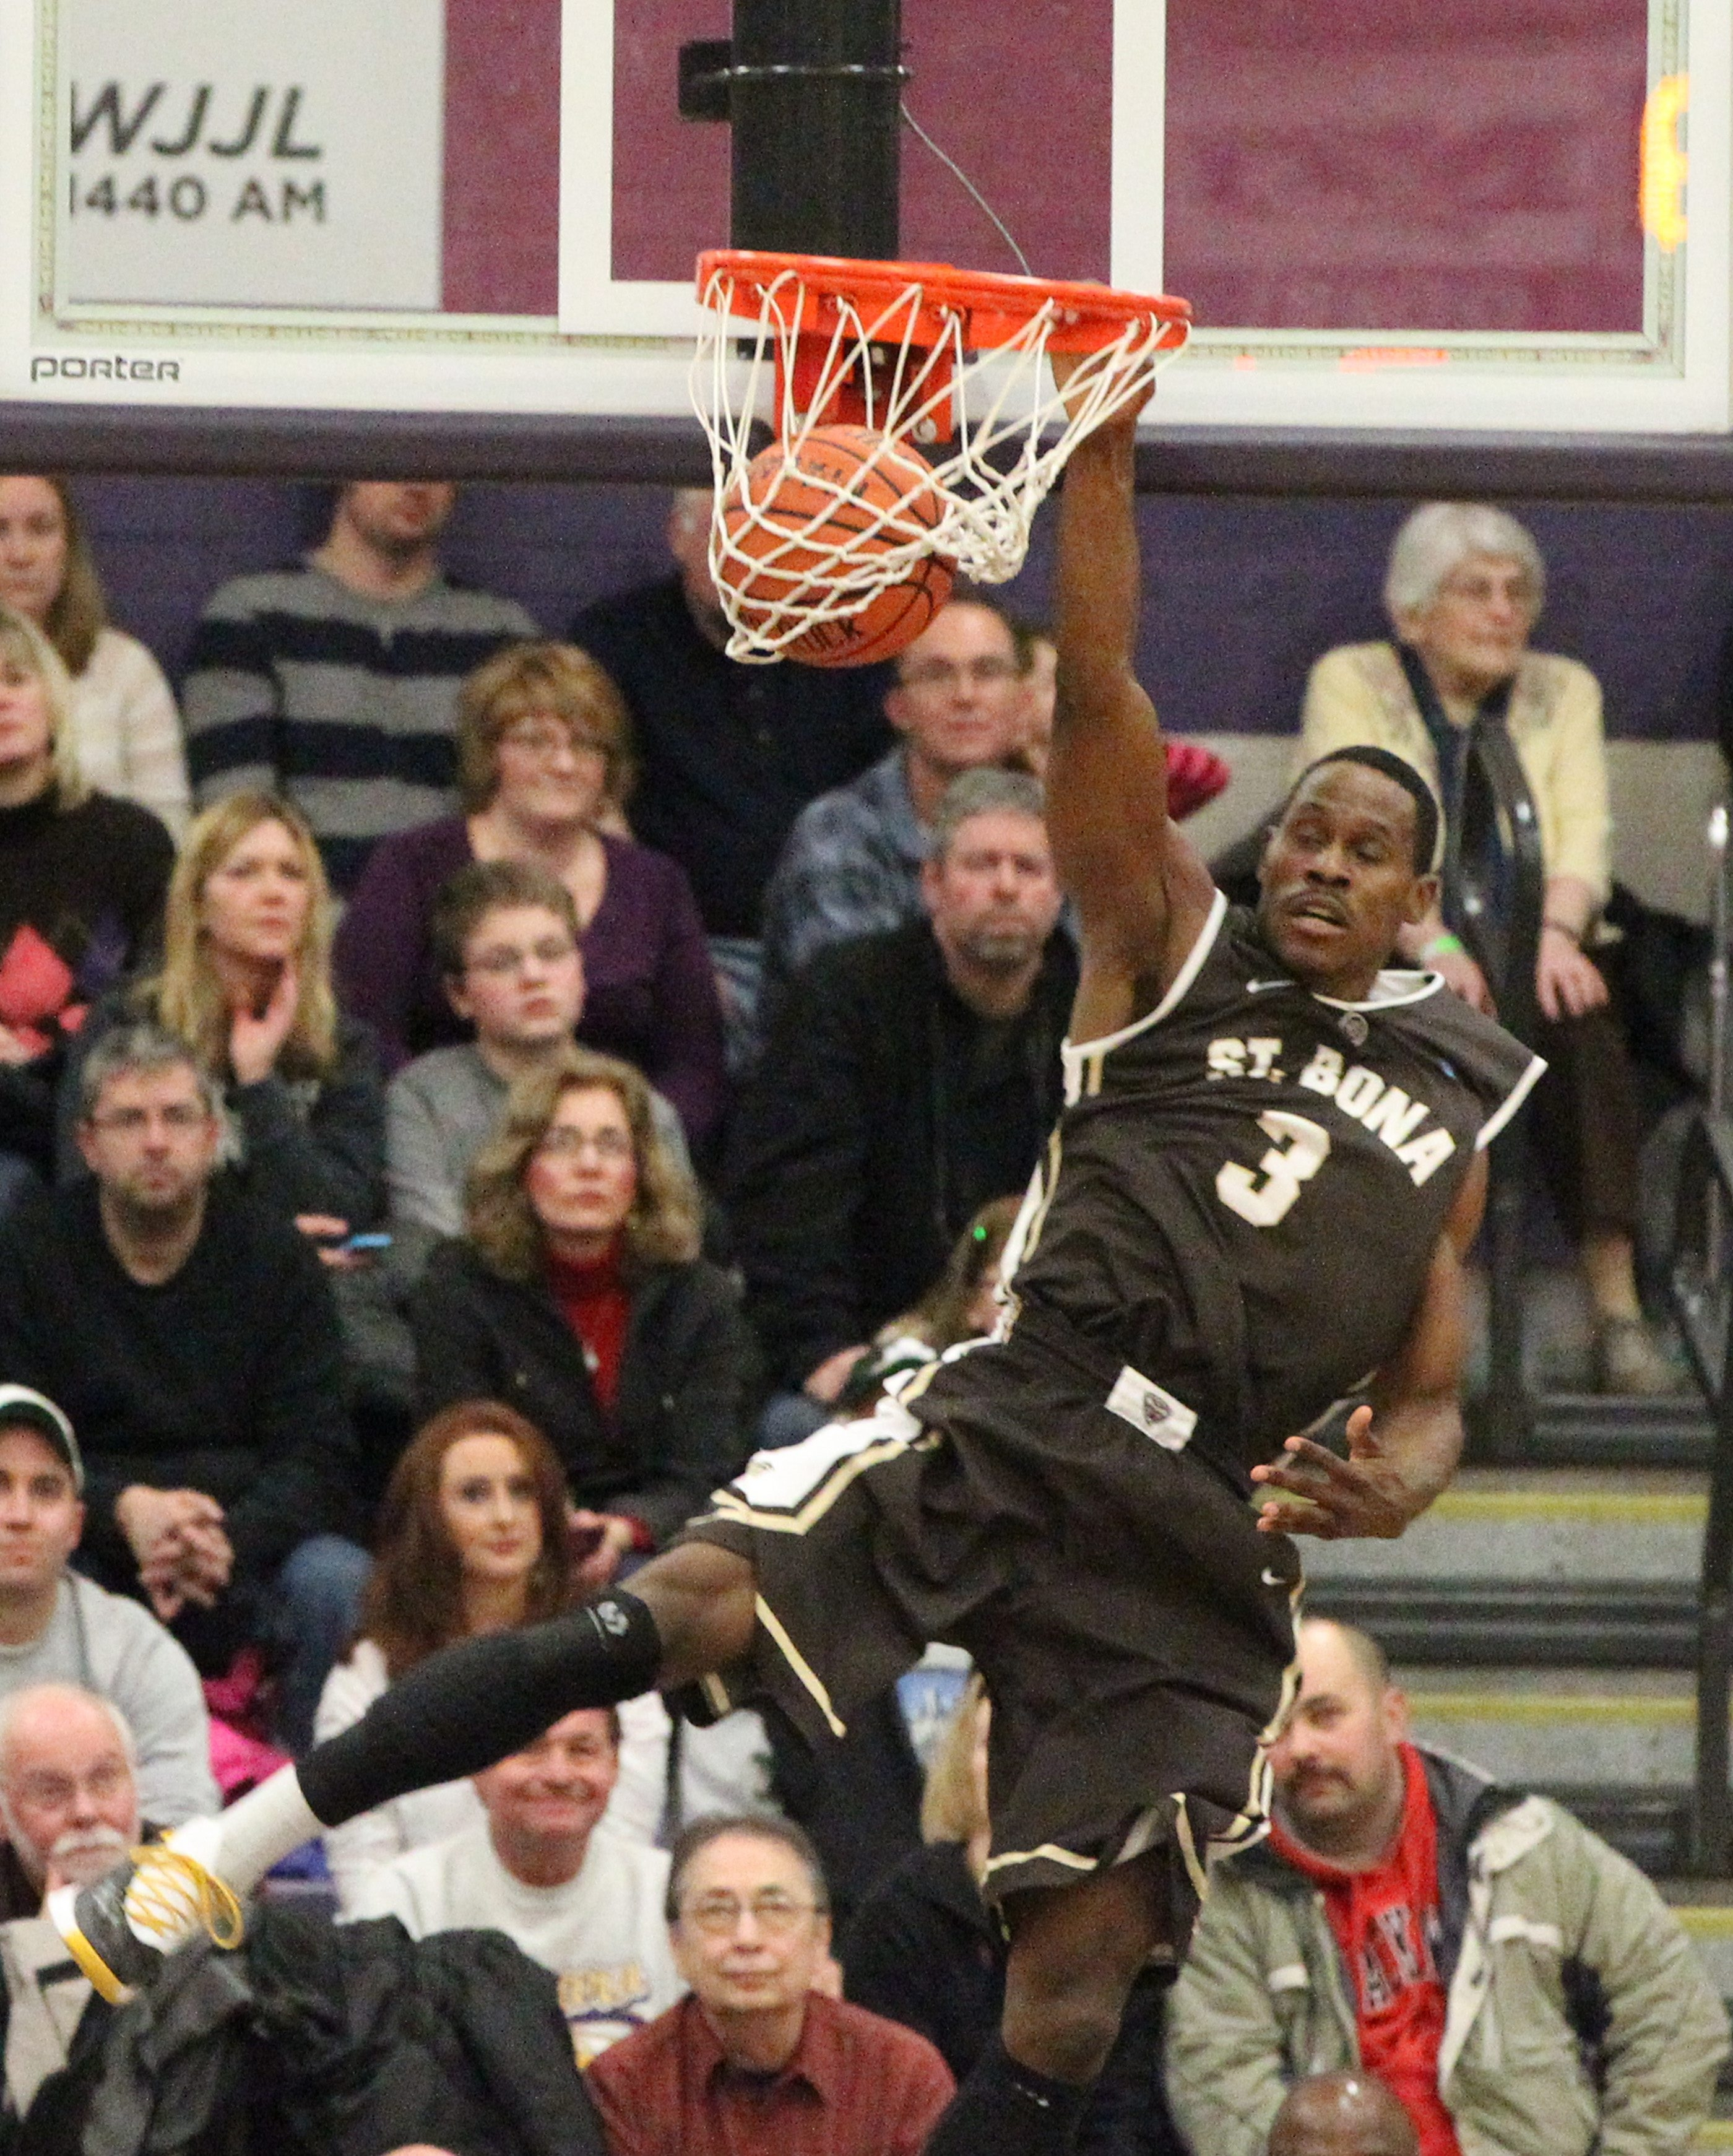 St. Bonaventure's Charlon Kloof dunks the ball after a steal Saturday.